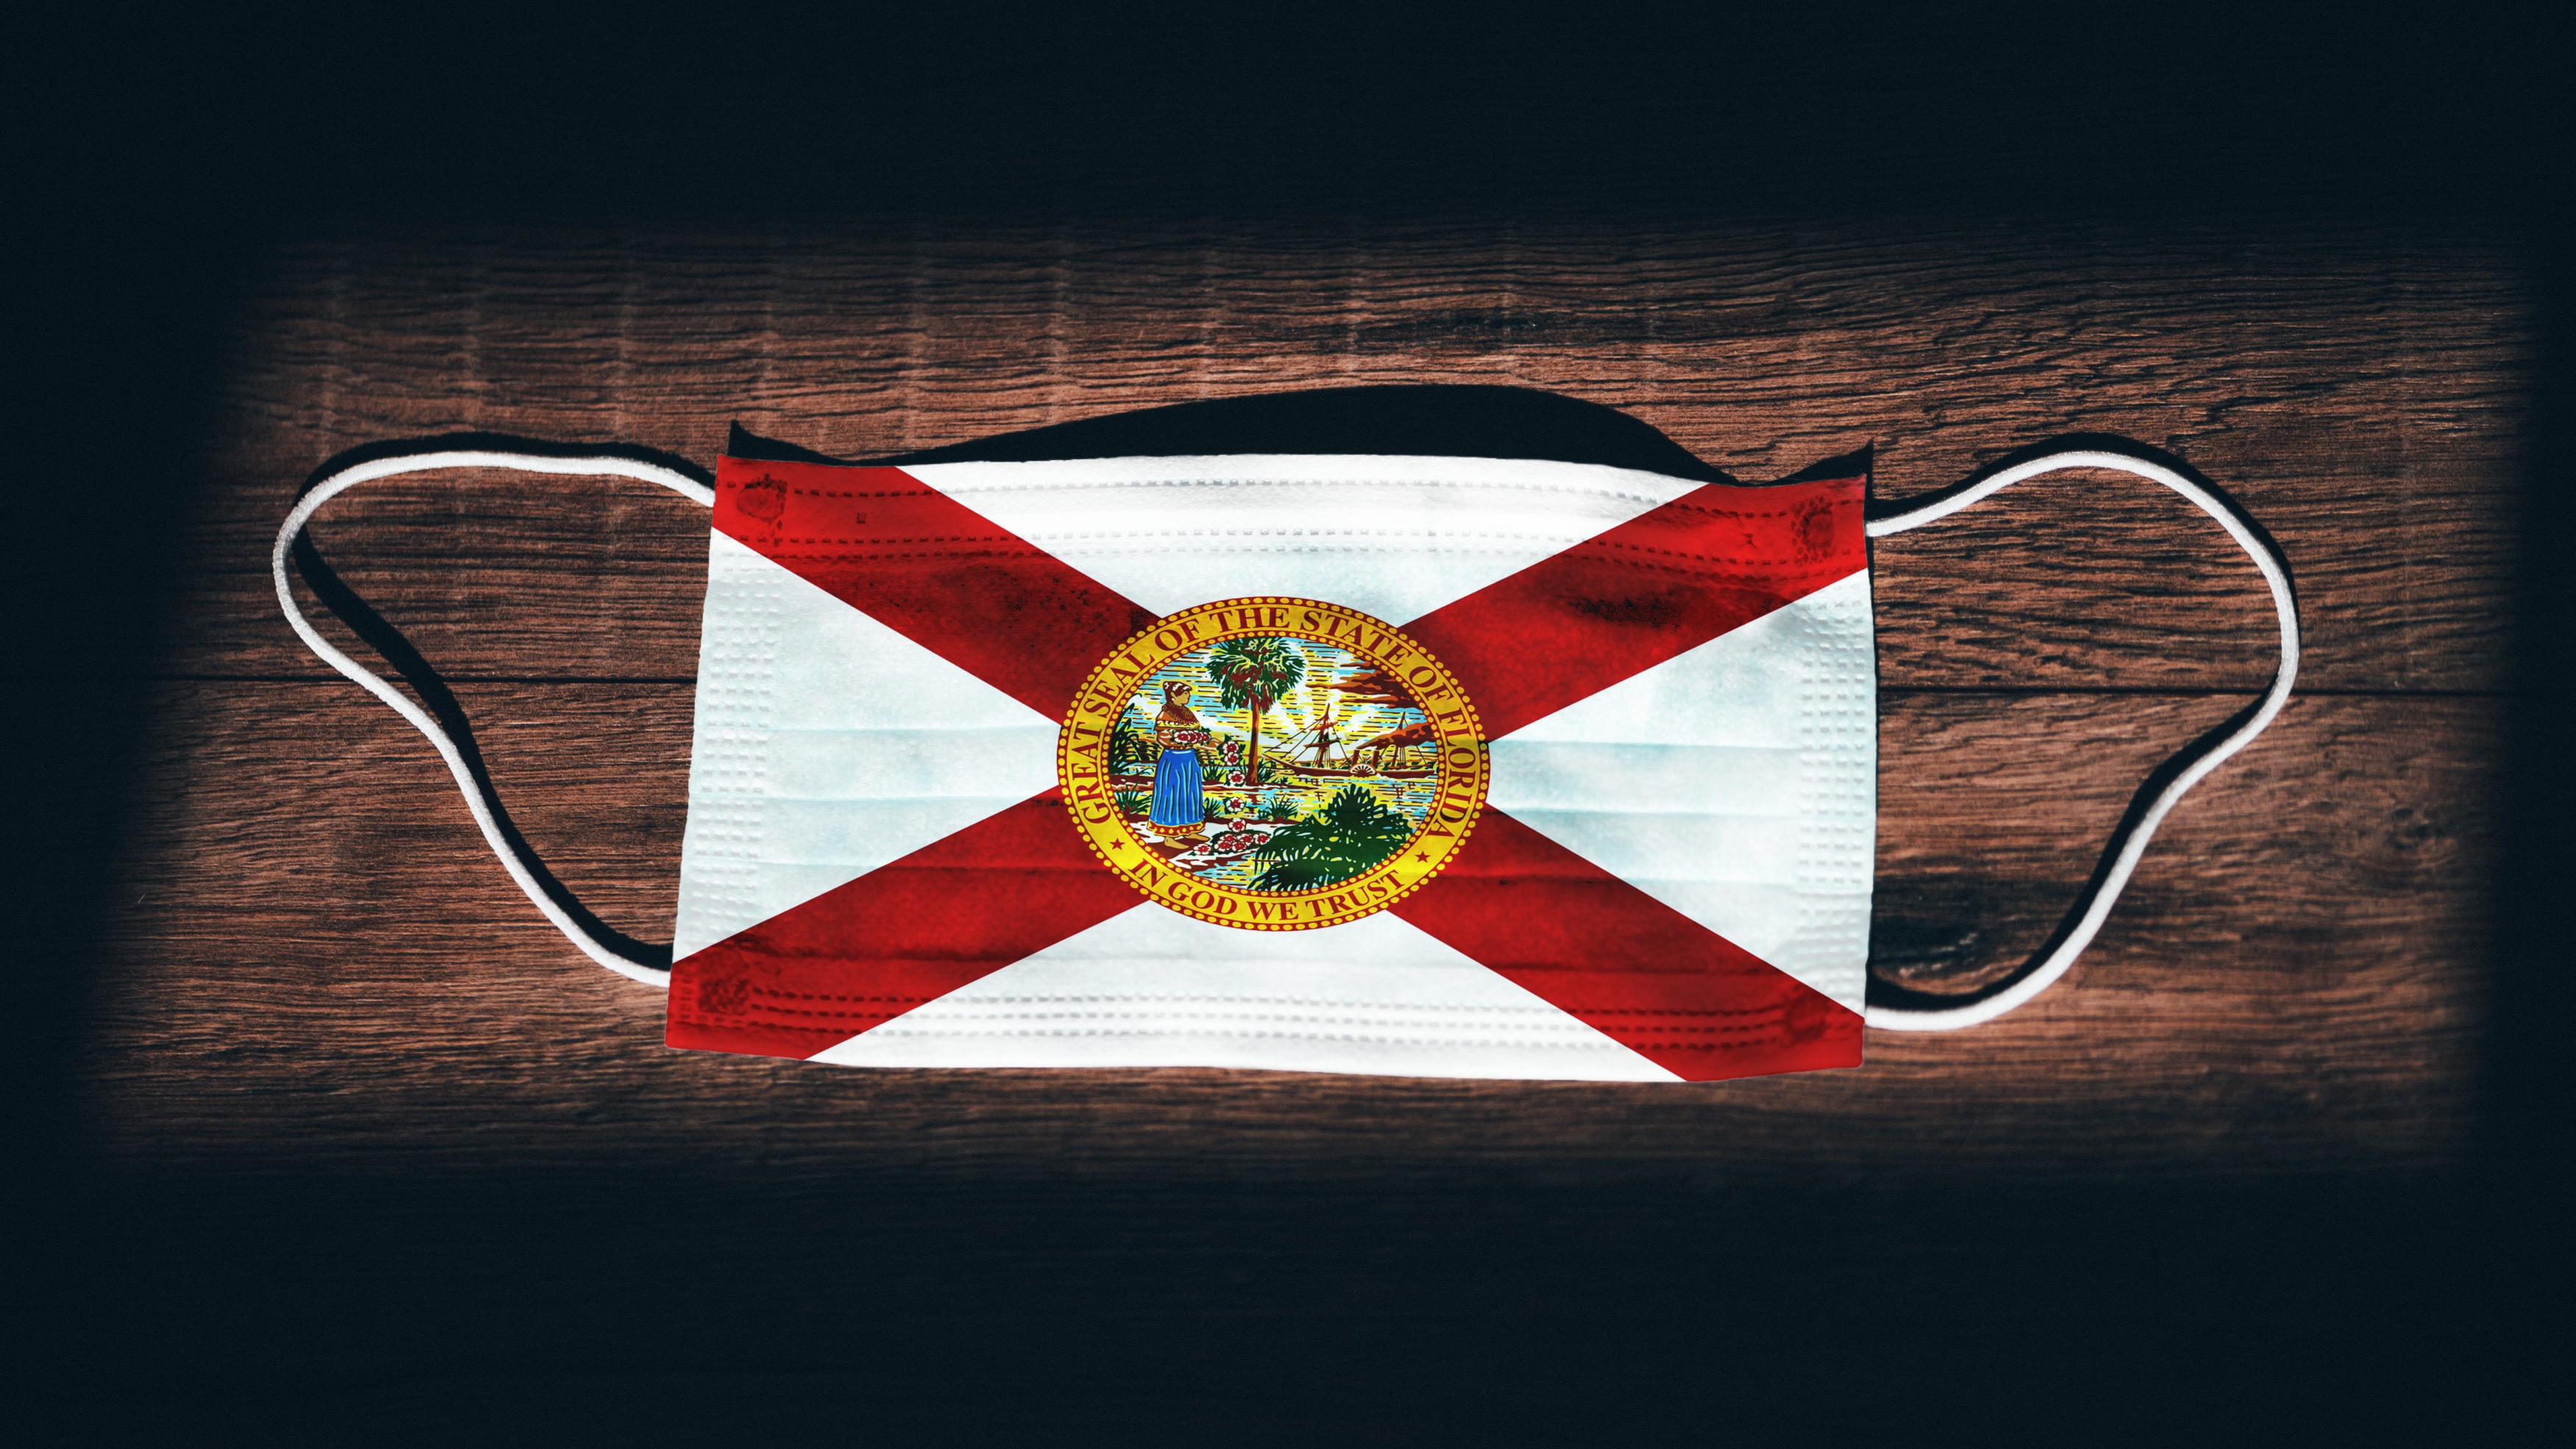 Florida Flag. Coronavirus Covid 19 in U.S. State. Medical mask isolate on a black background. Face and mouth masks for protection against airborne infections in USA, America